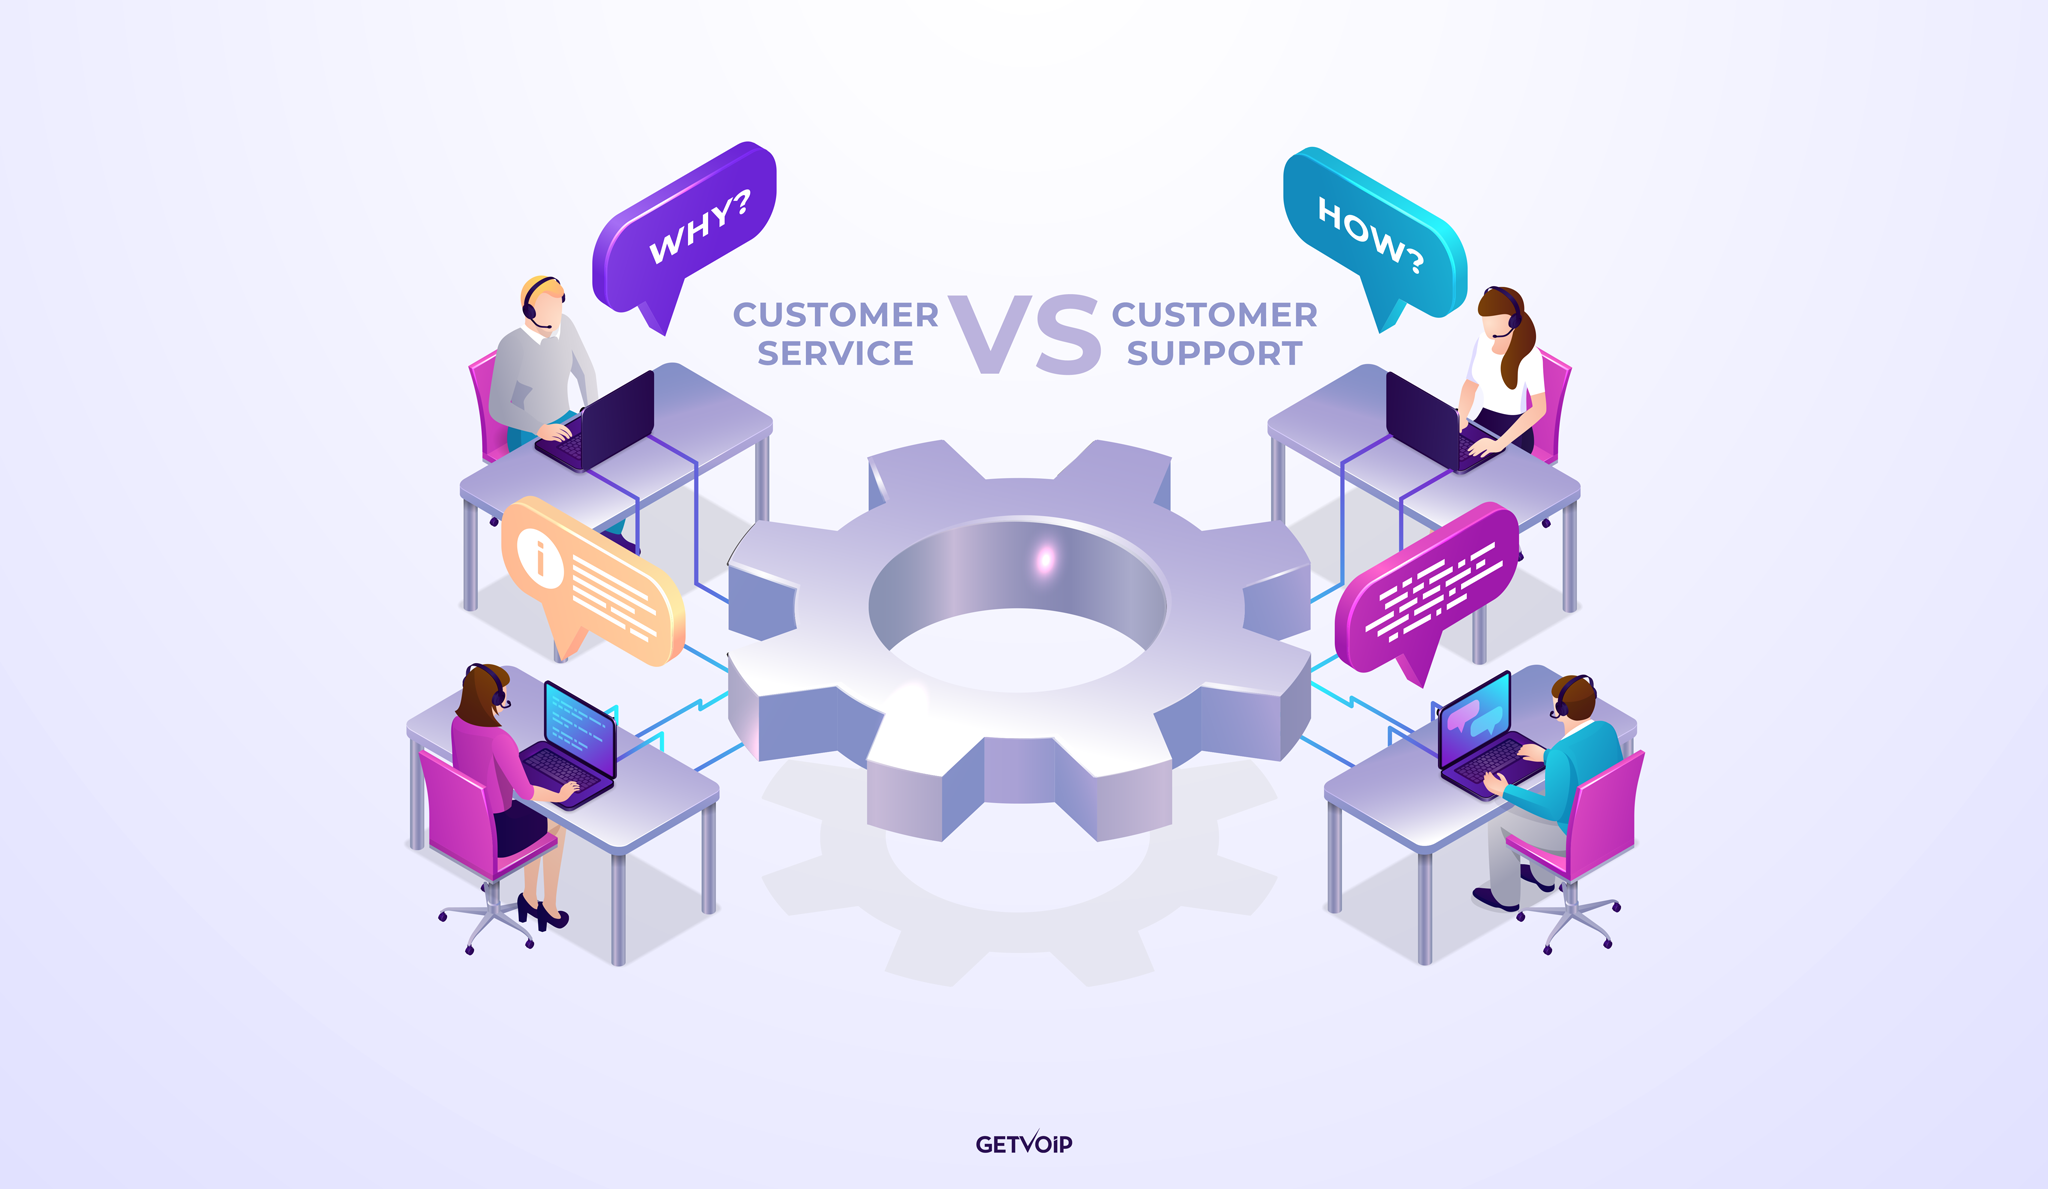 Customer Service vs Customer Support: Differences and Best Practices